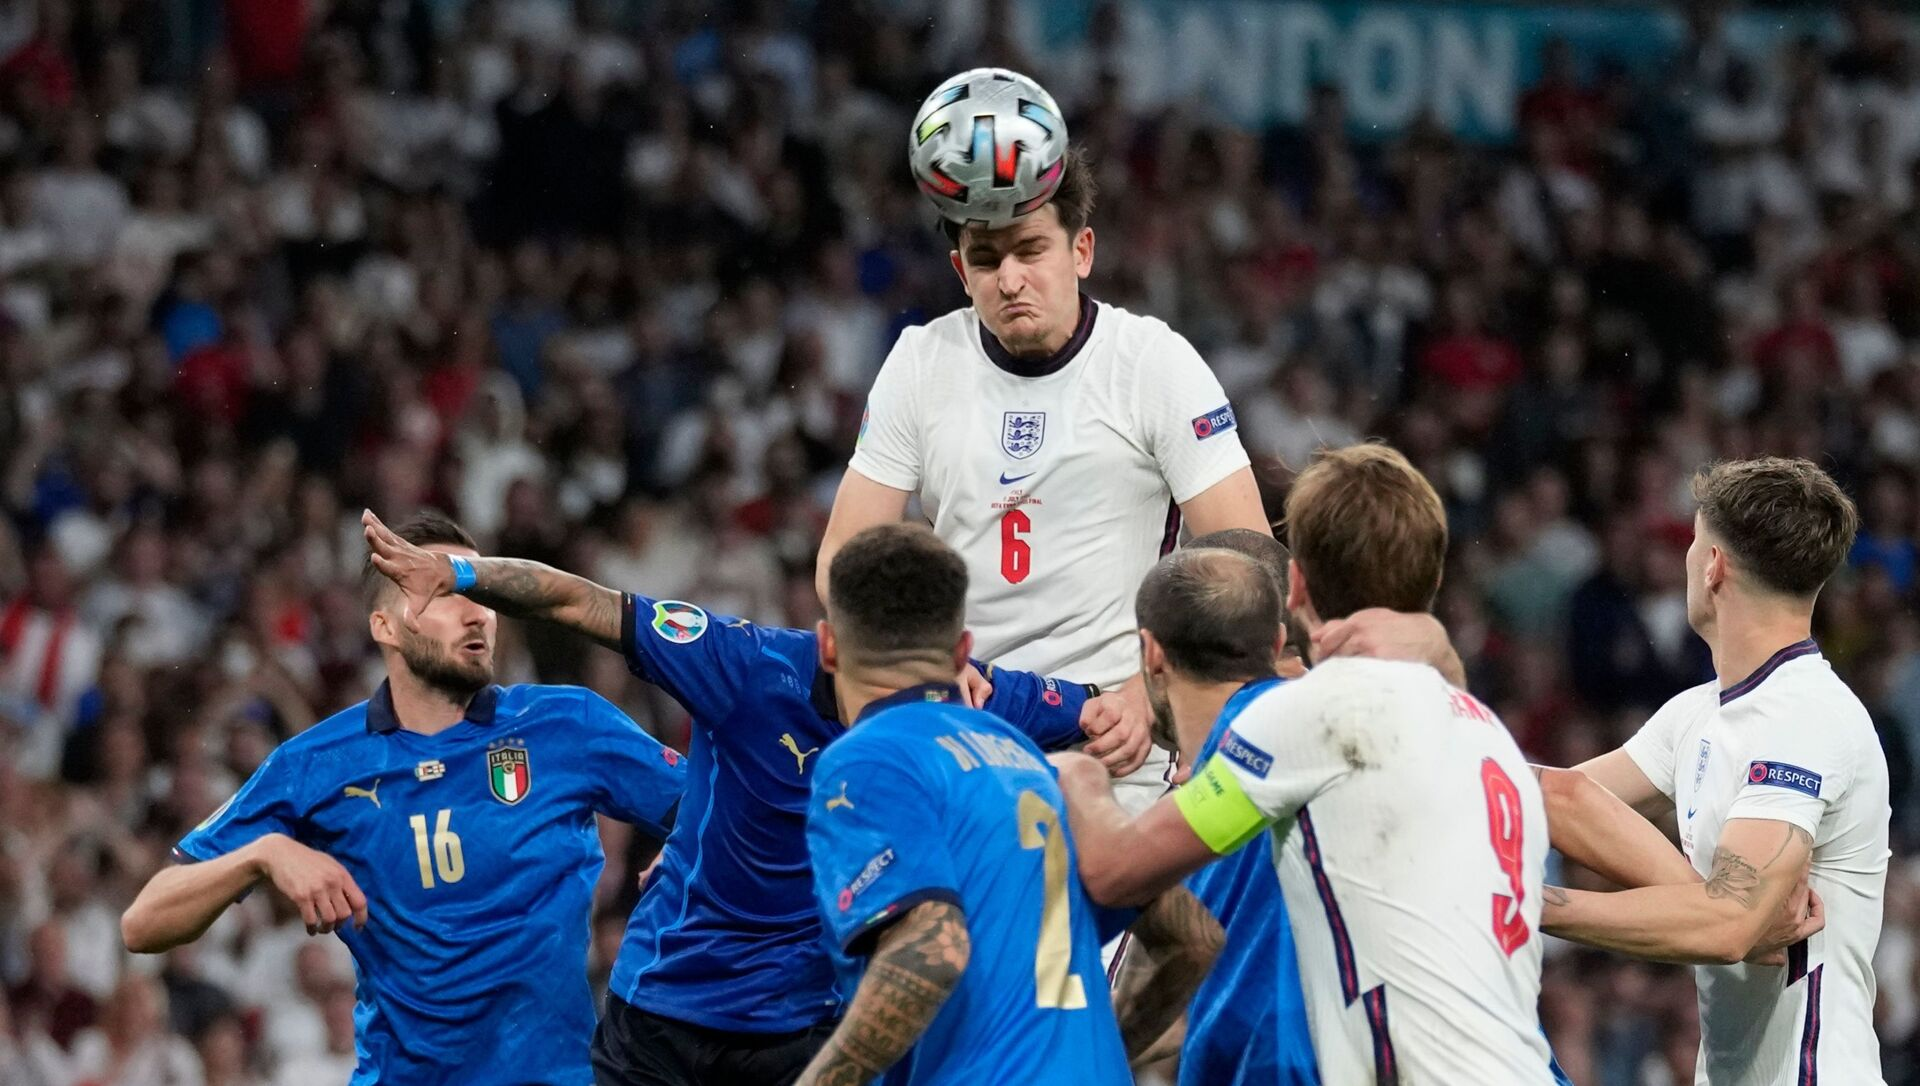 Harry Maguire heads the ball for England against Italy in Euro 2020 final - Sputnik International, 1920, 29.07.2021